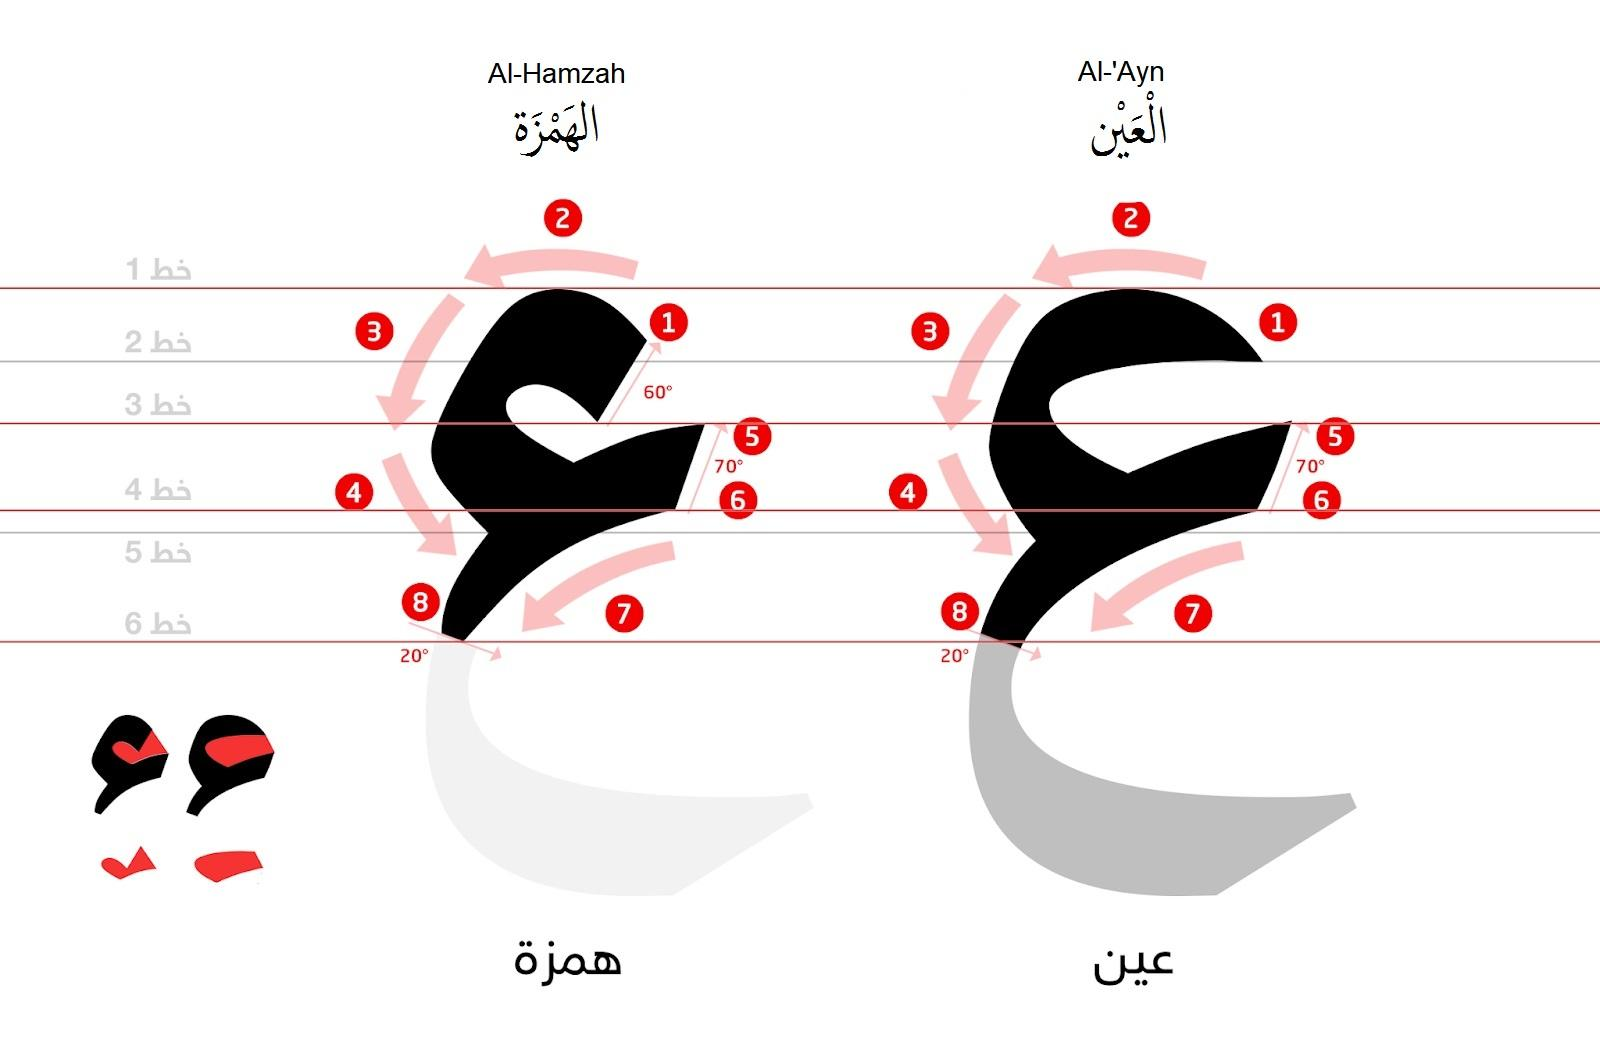 Orthography of ء